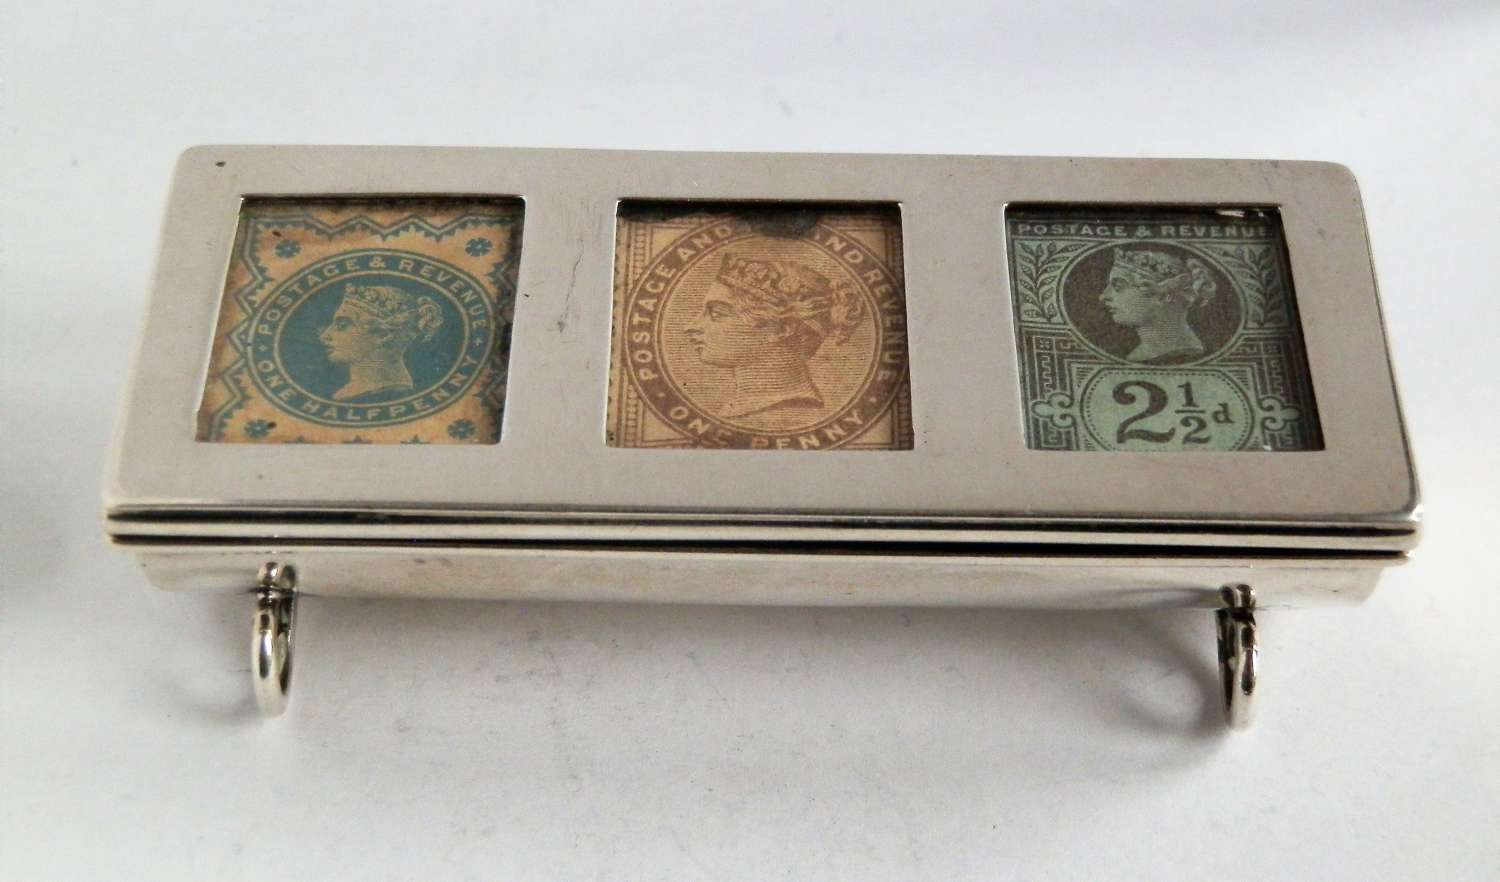 Victorian 3 part silver stamp box, 1898